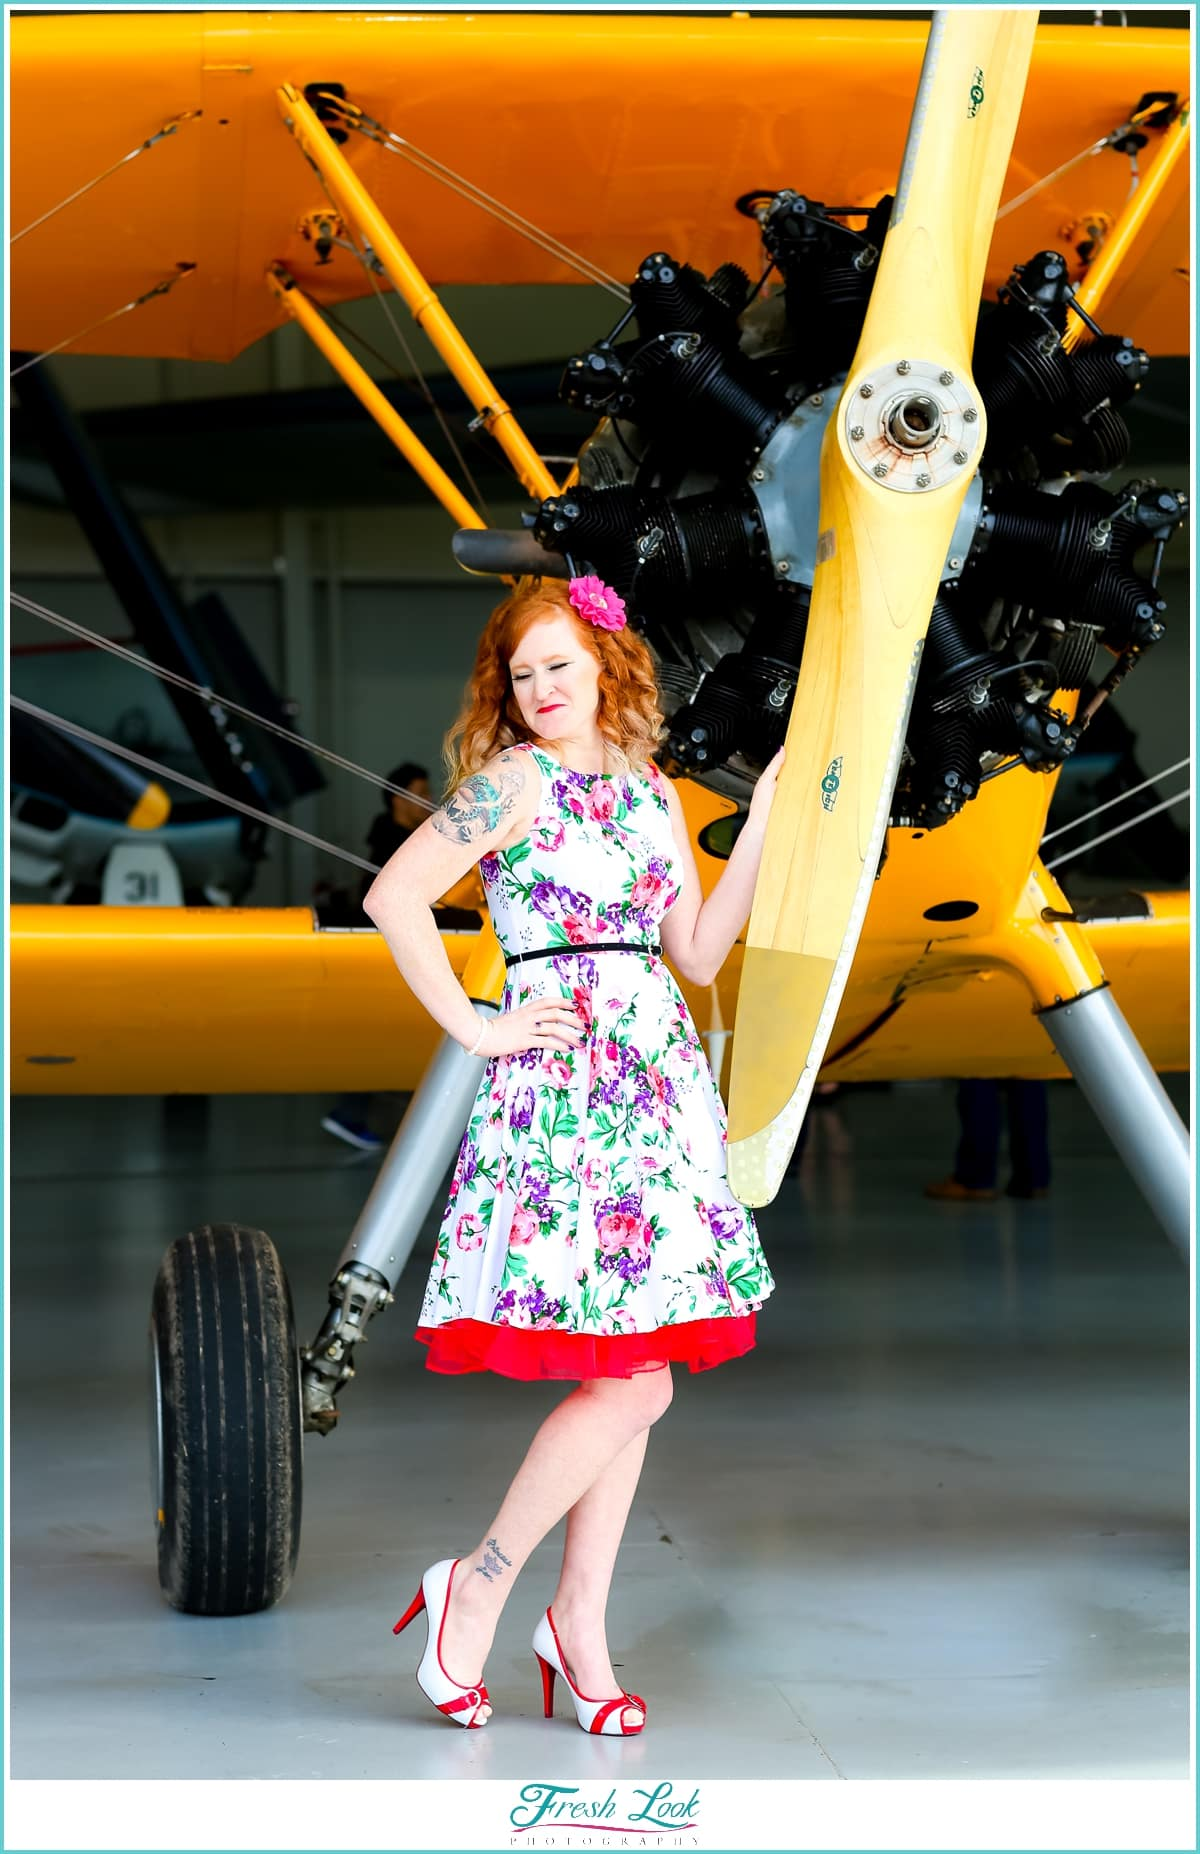 pin up girl with vintage planes